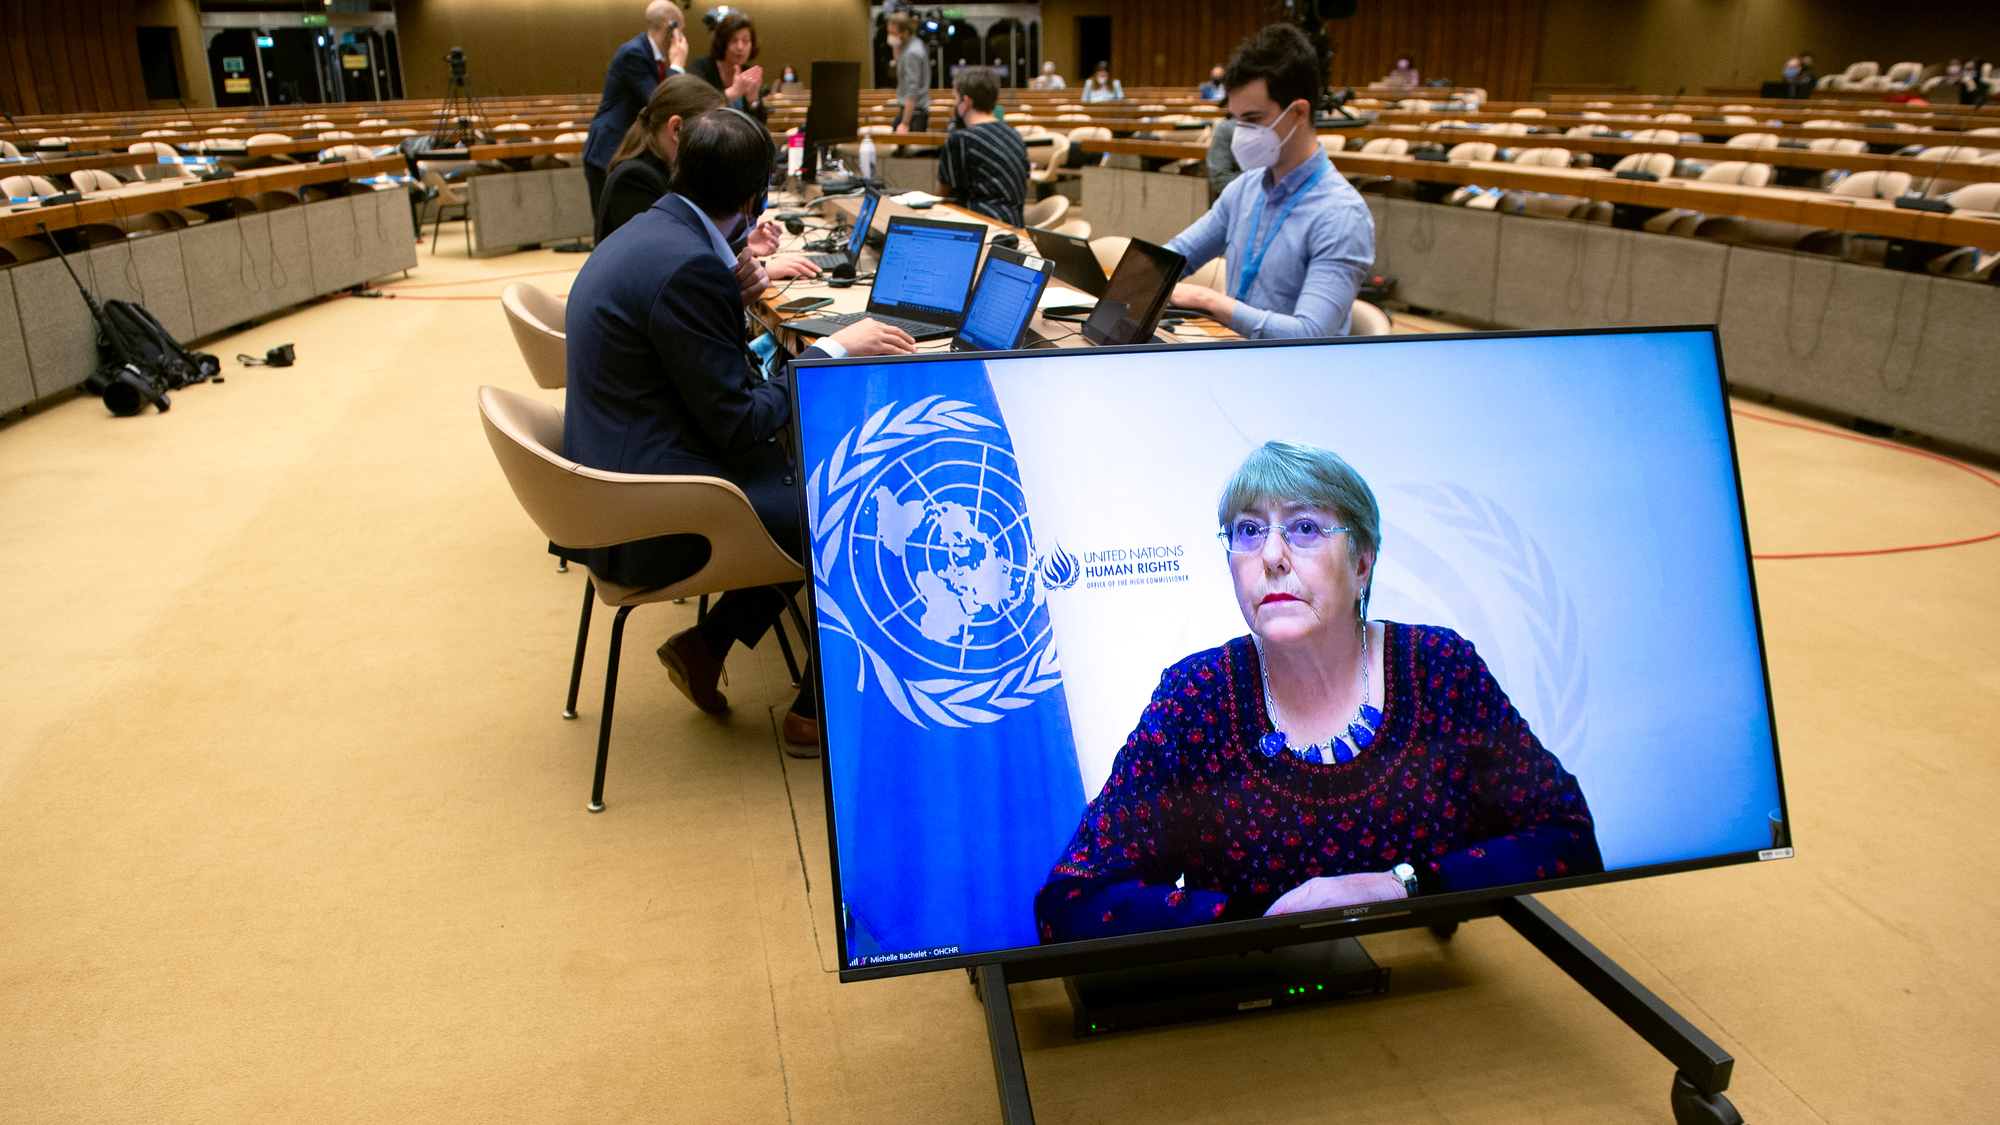 Michelle Bachelet's image is seen on a large screen inside a conference hall